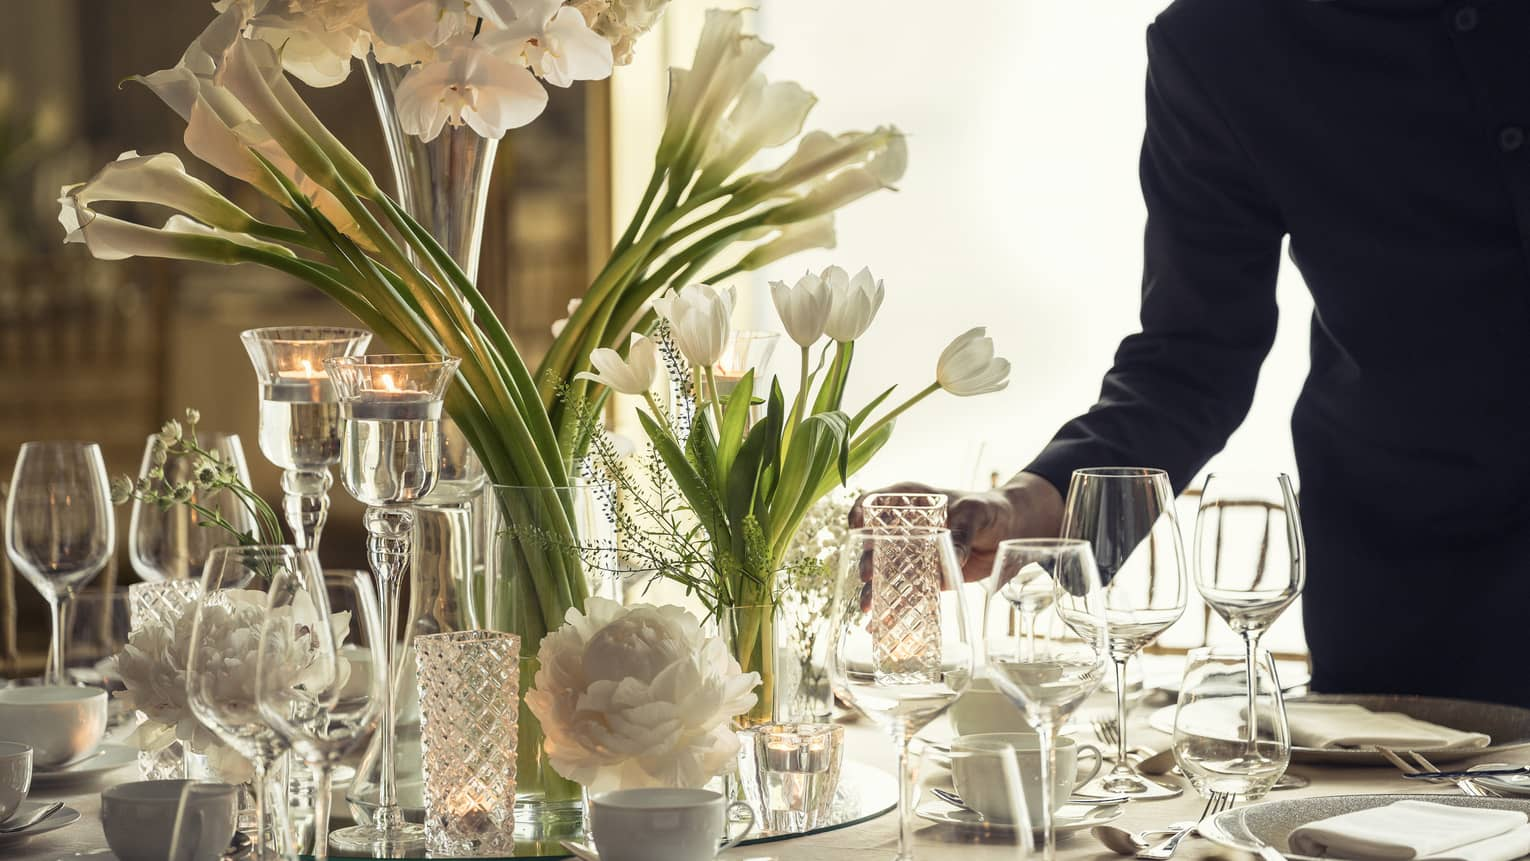 Hotel staff sets elegant banquet dining table with crystal glasses, vases with white flowers